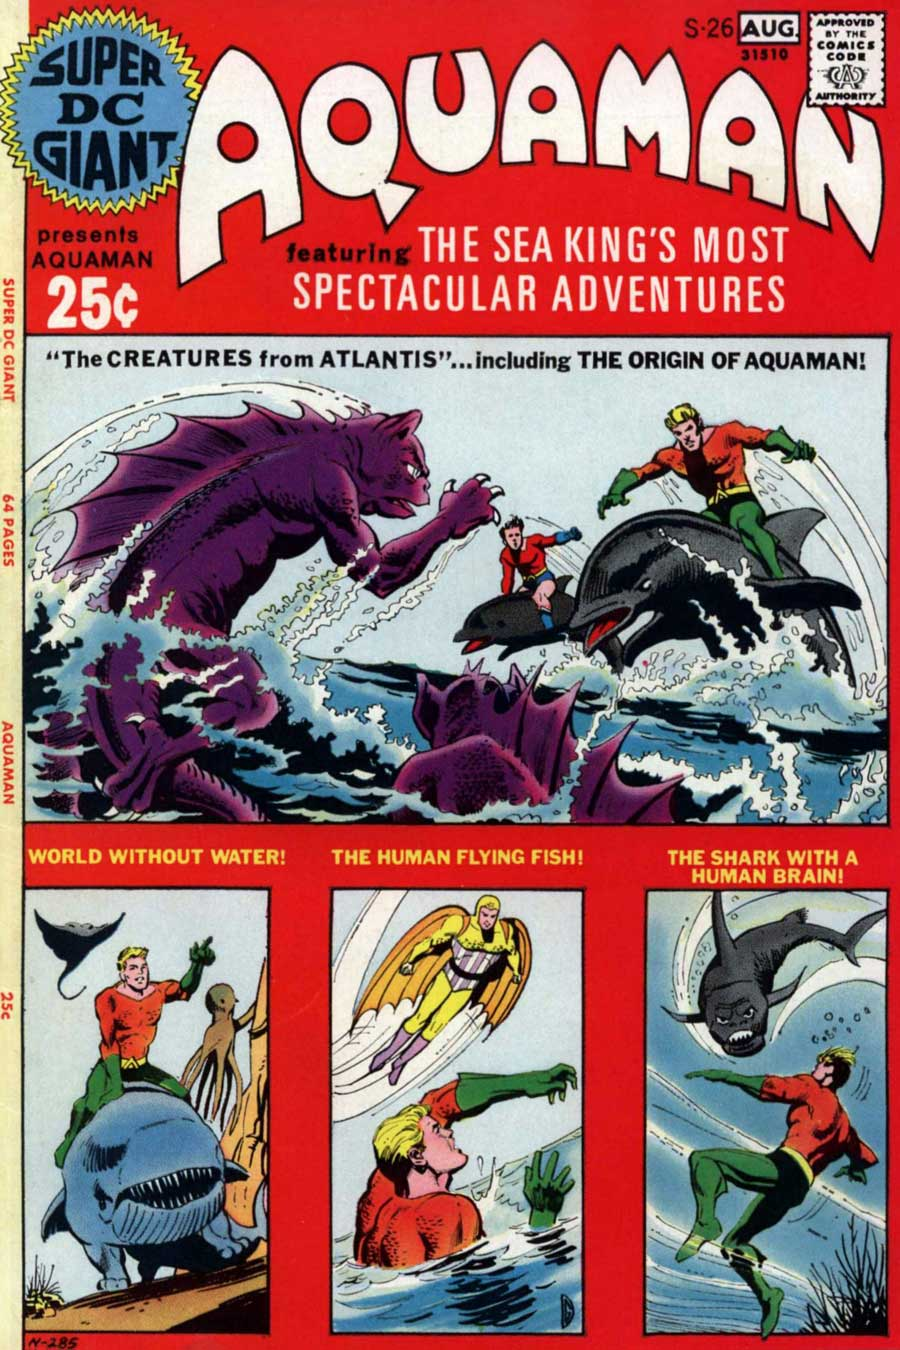 SUPER DC GIANT #26 featuring Aquaman by Ramona Fradon